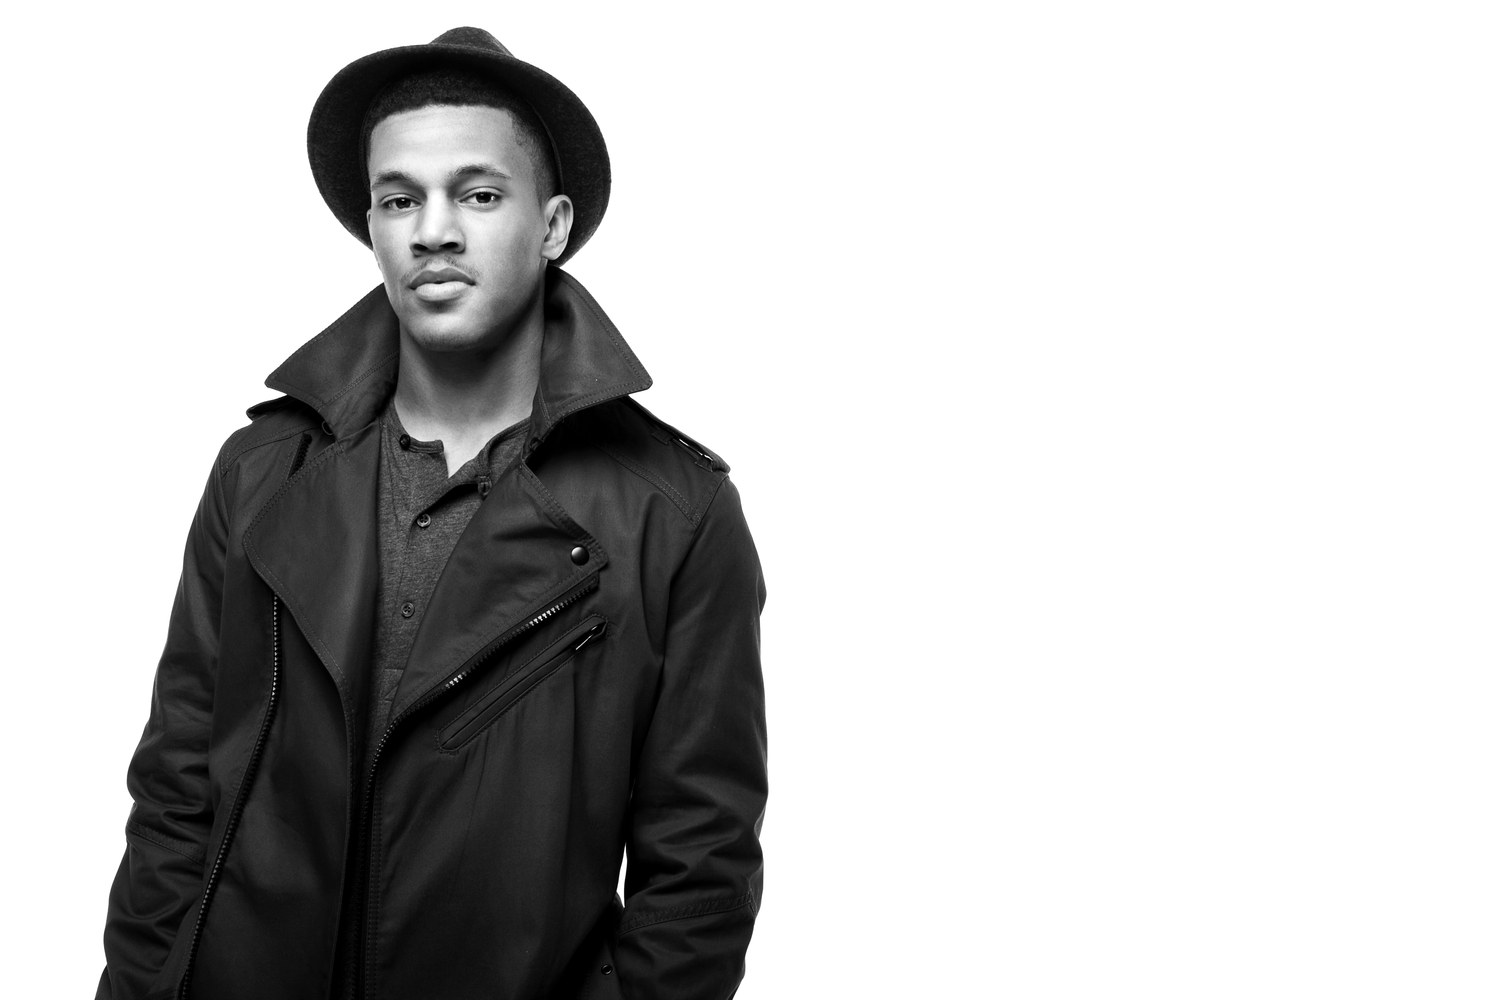 NEW MUSIC VIDEO: TRIP LEE - 'I'M GOOD' FT  LECRAE | The